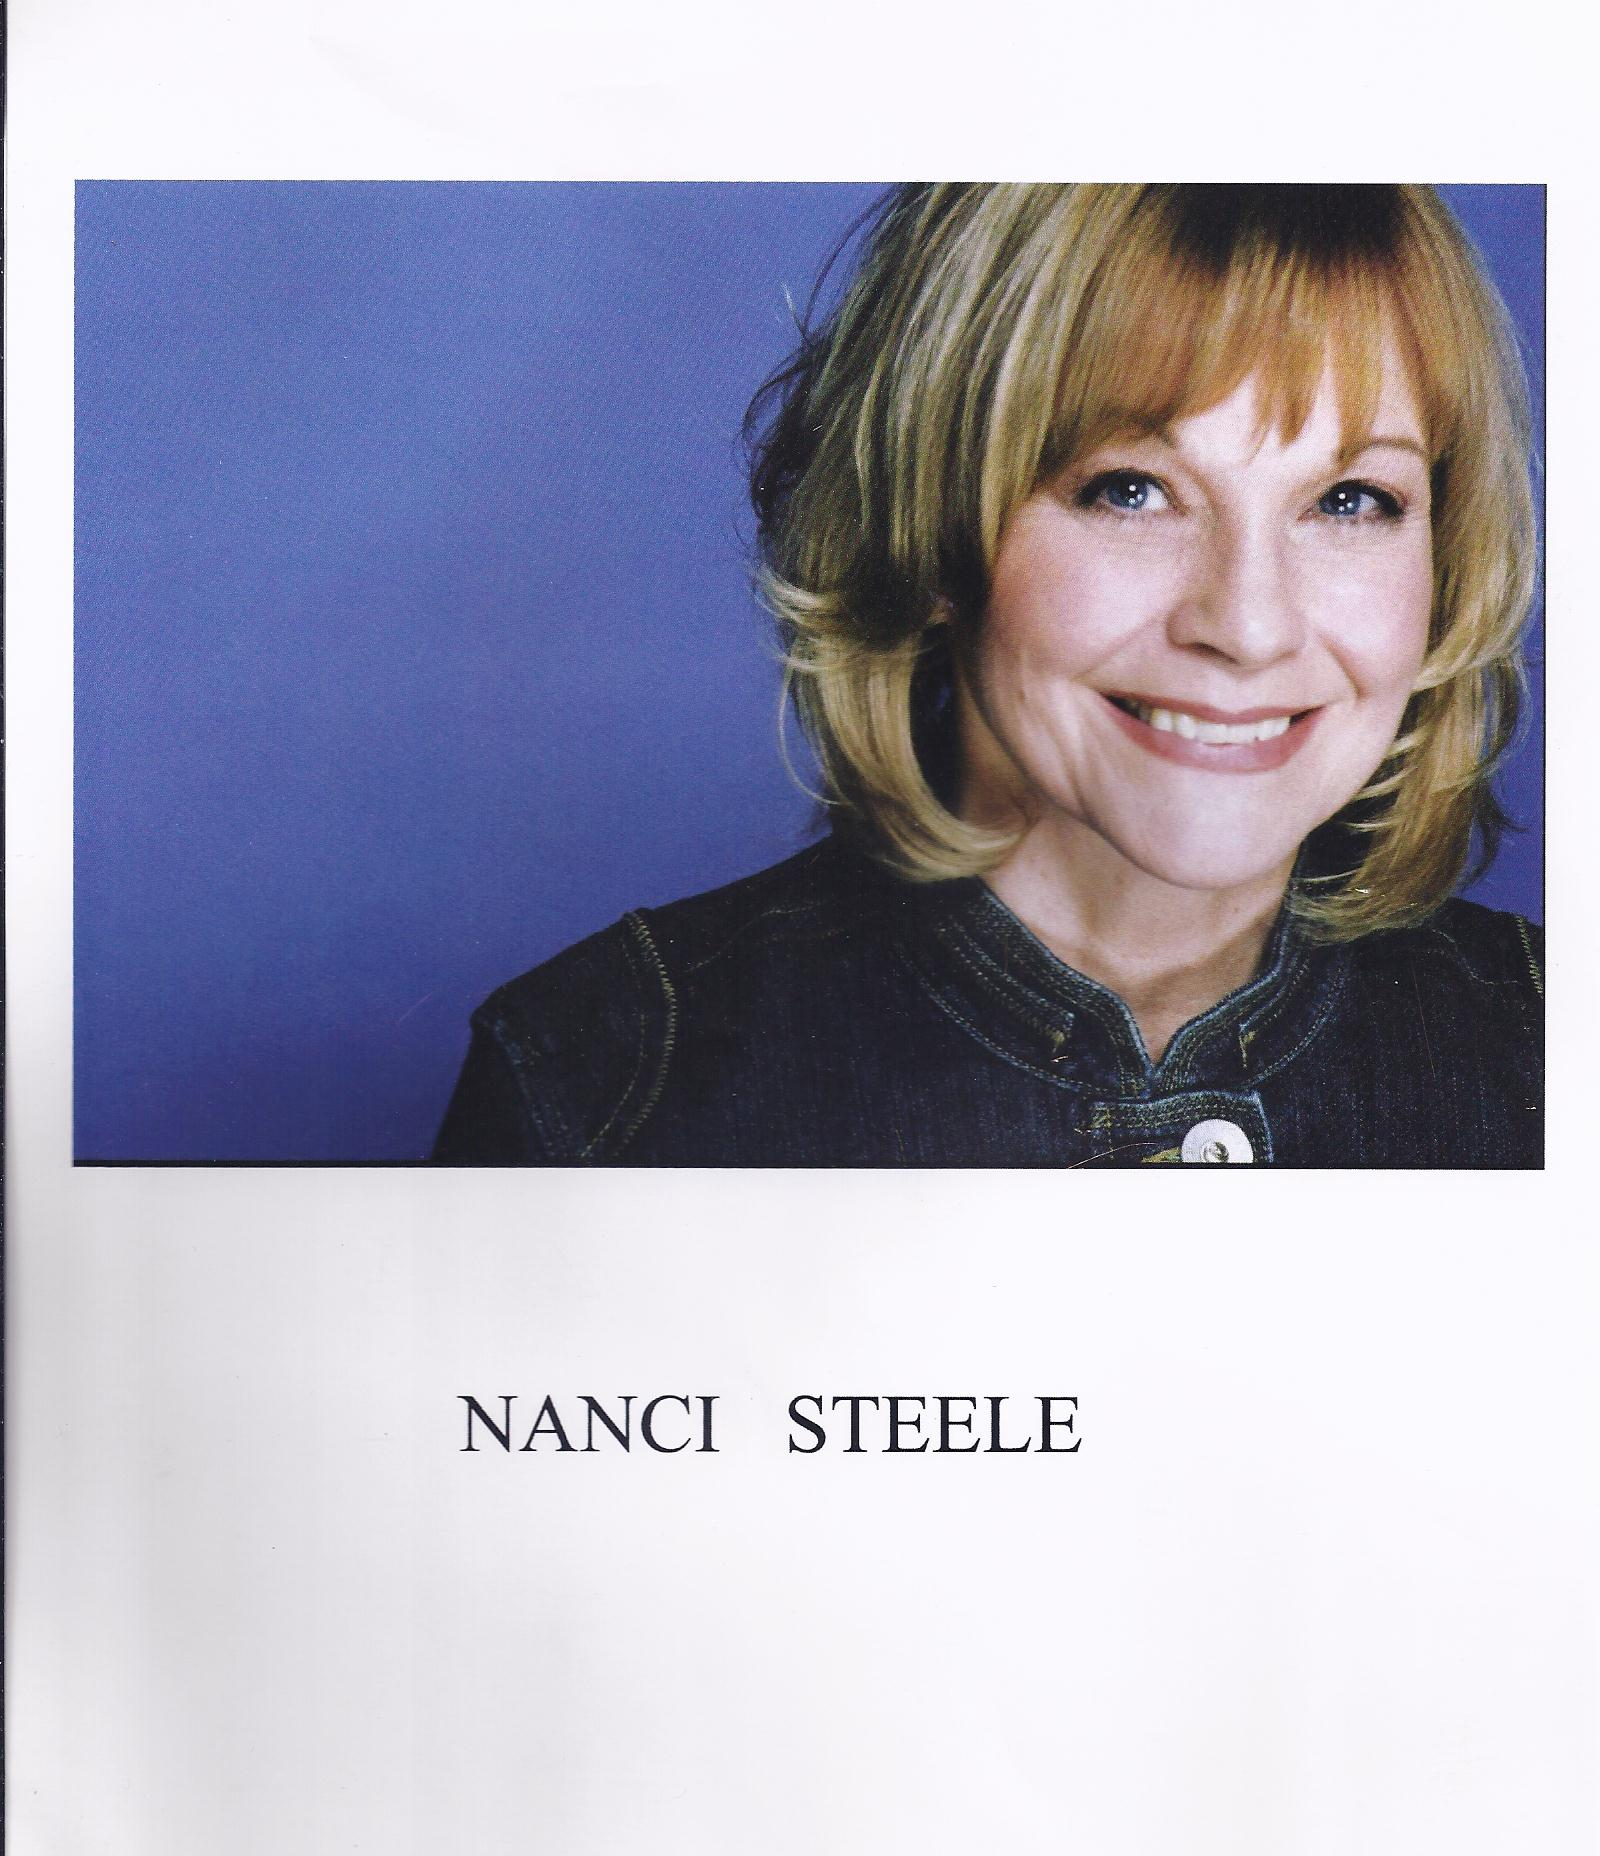 Nanci Steele